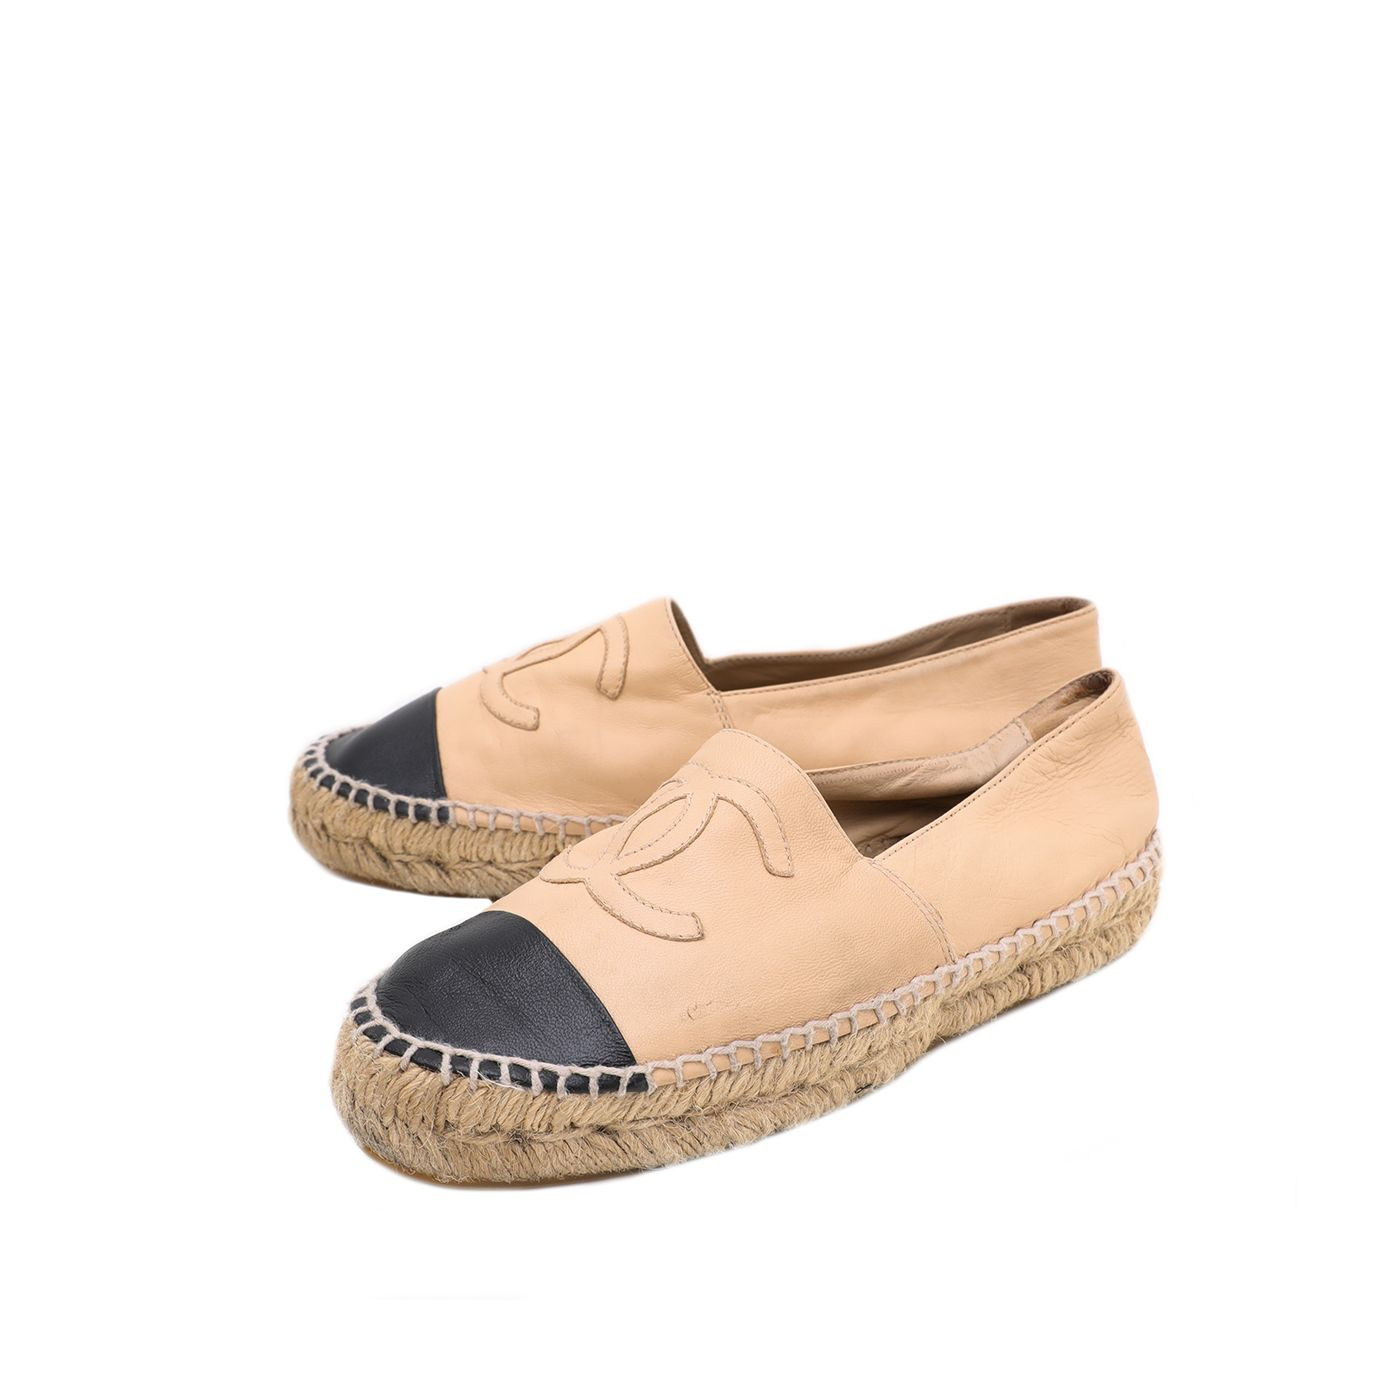 Chanel Bicolor CC Leather Espadrille 35